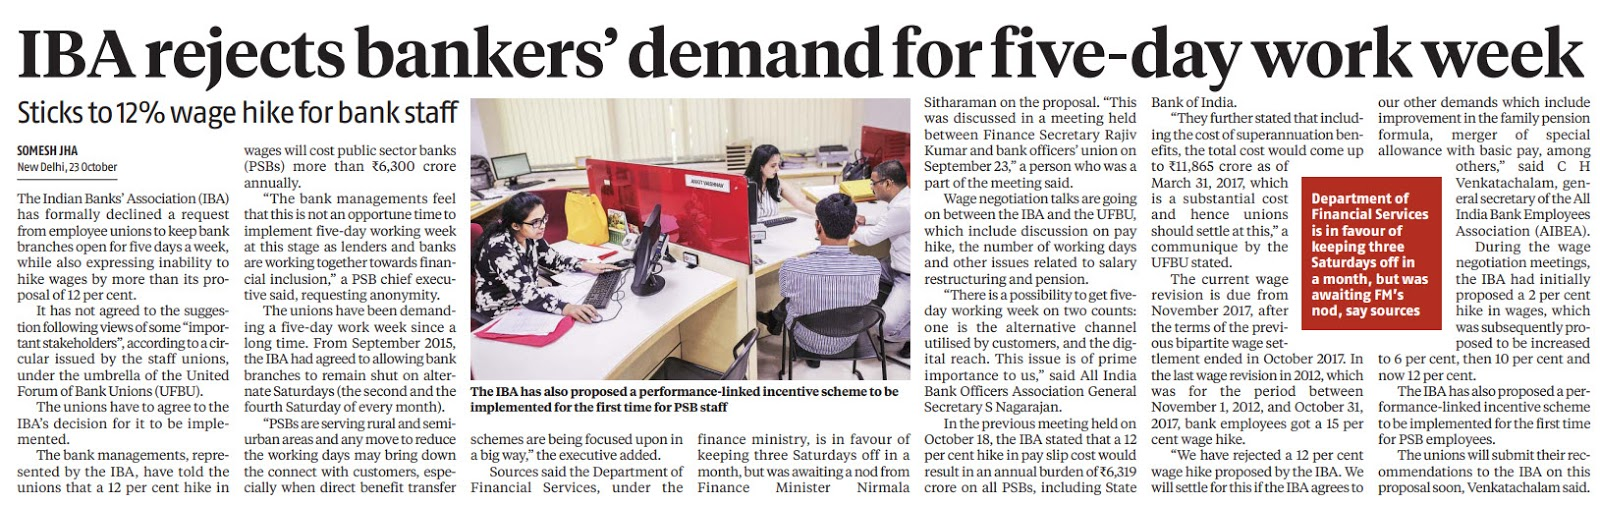 IBA Rejects Bankers demand for 5 day work week | News dated 24.10.2019